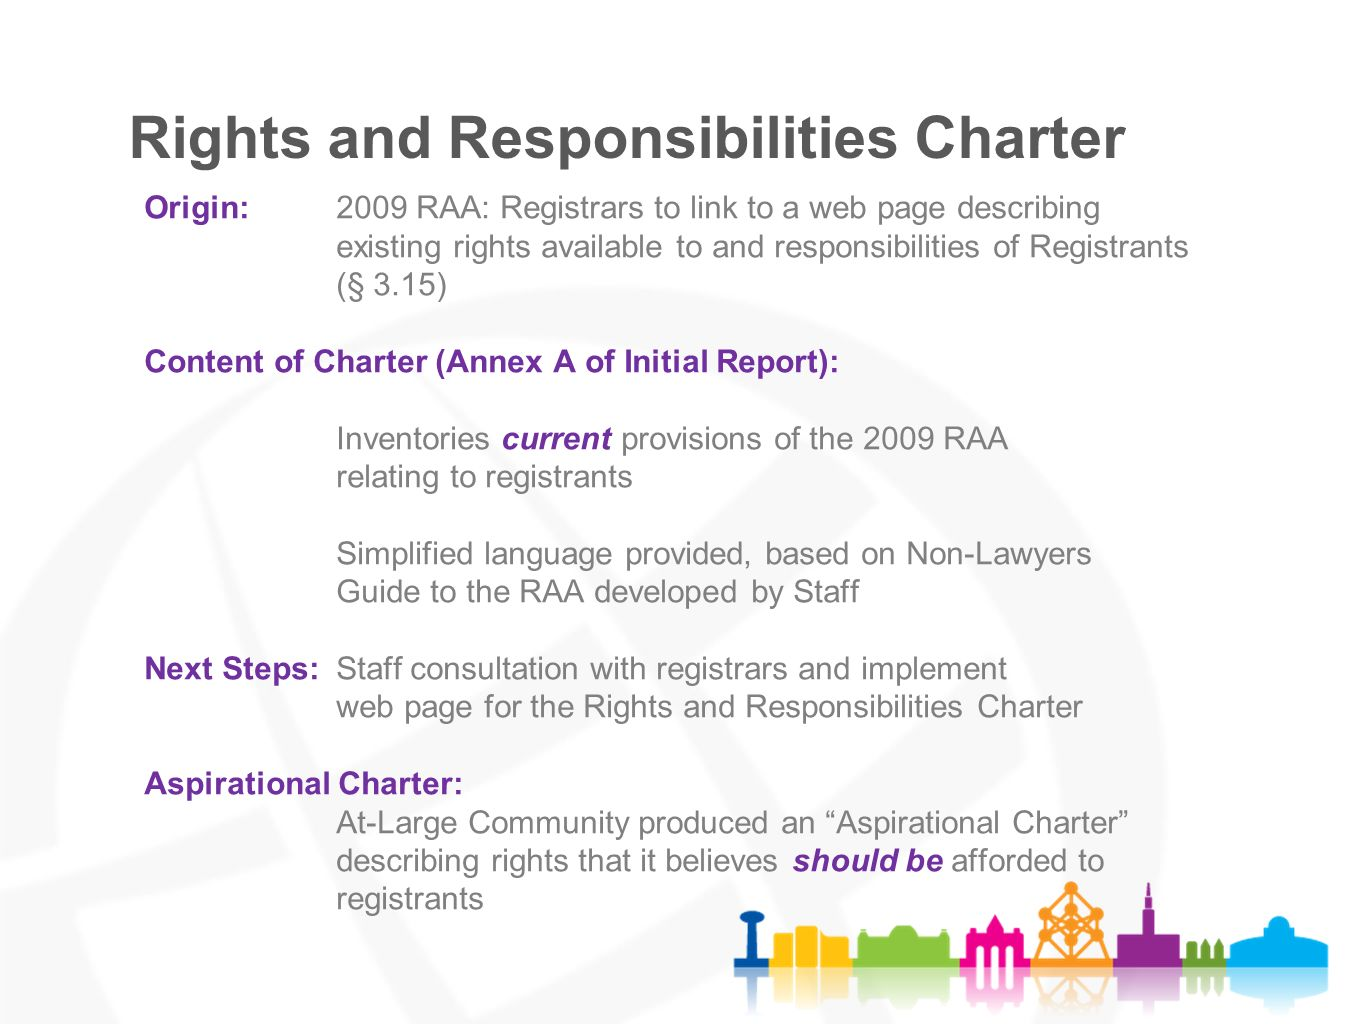 Origin:2009 RAA: Registrars to link to a web page describing existing rights available to and responsibilities of Registrants (§ 3.15) Content of Charter (Annex A of Initial Report): Inventories current provisions of the 2009 RAA relating to registrants Simplified language provided, based on Non-Lawyers Guide to the RAA developed by Staff Next Steps: Staff consultation with registrars and implement web page for the Rights and Responsibilities Charter Aspirational Charter: At-Large Community produced an Aspirational Charter describing rights that it believes should be afforded to registrants Rights and Responsibilities Charter